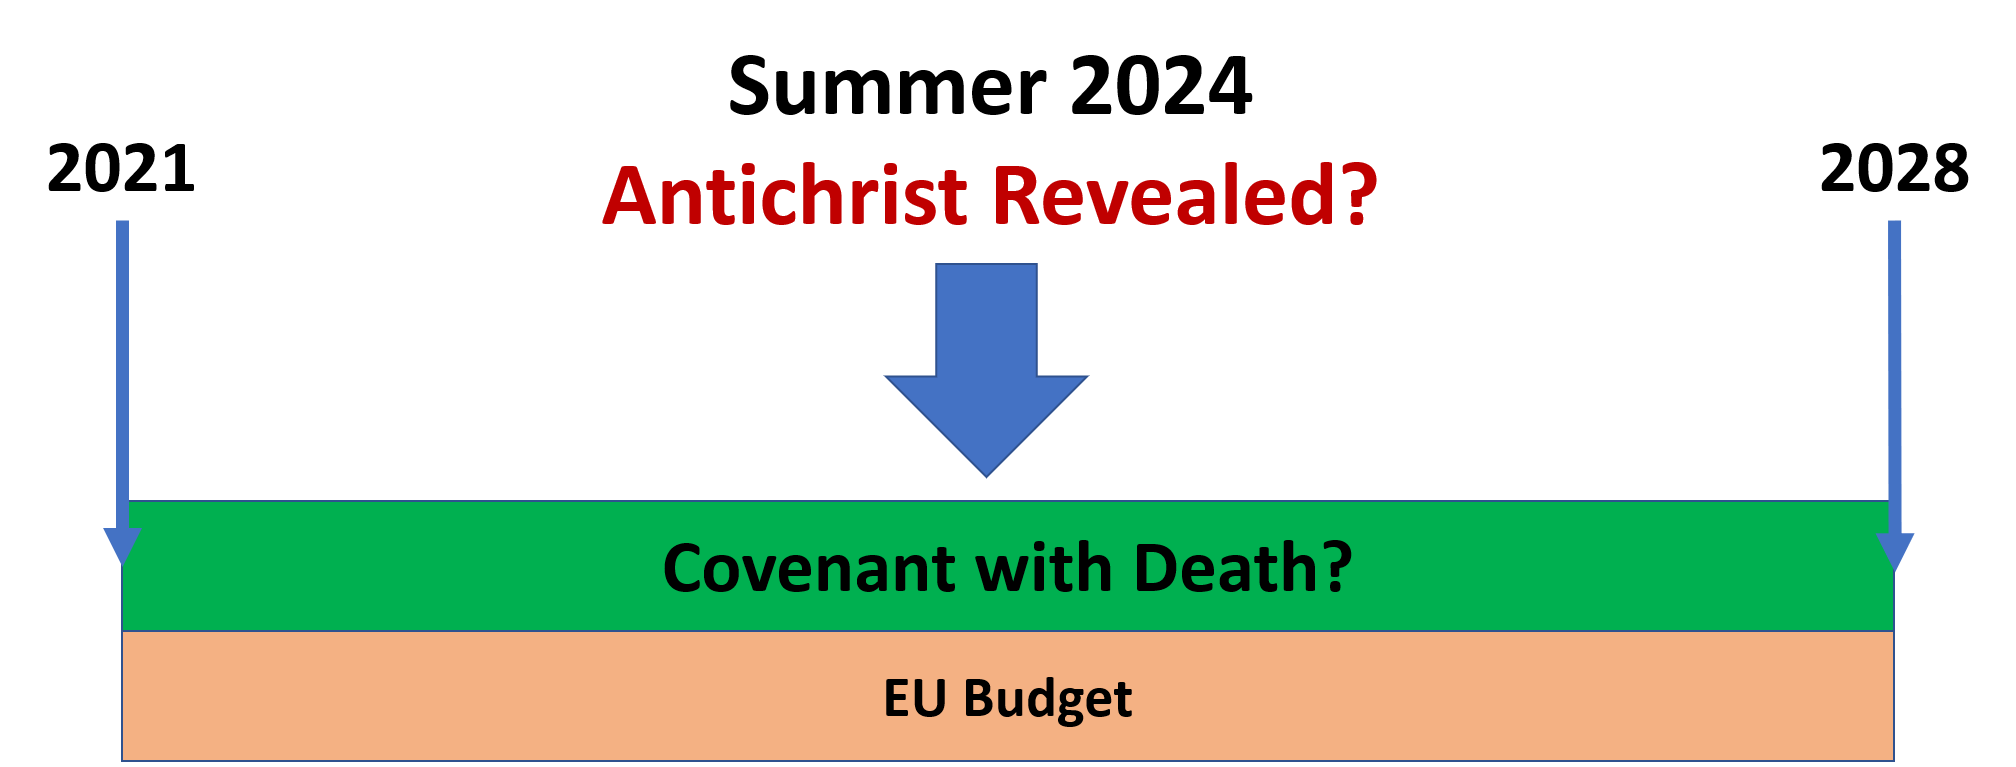 antichrist revealed.png